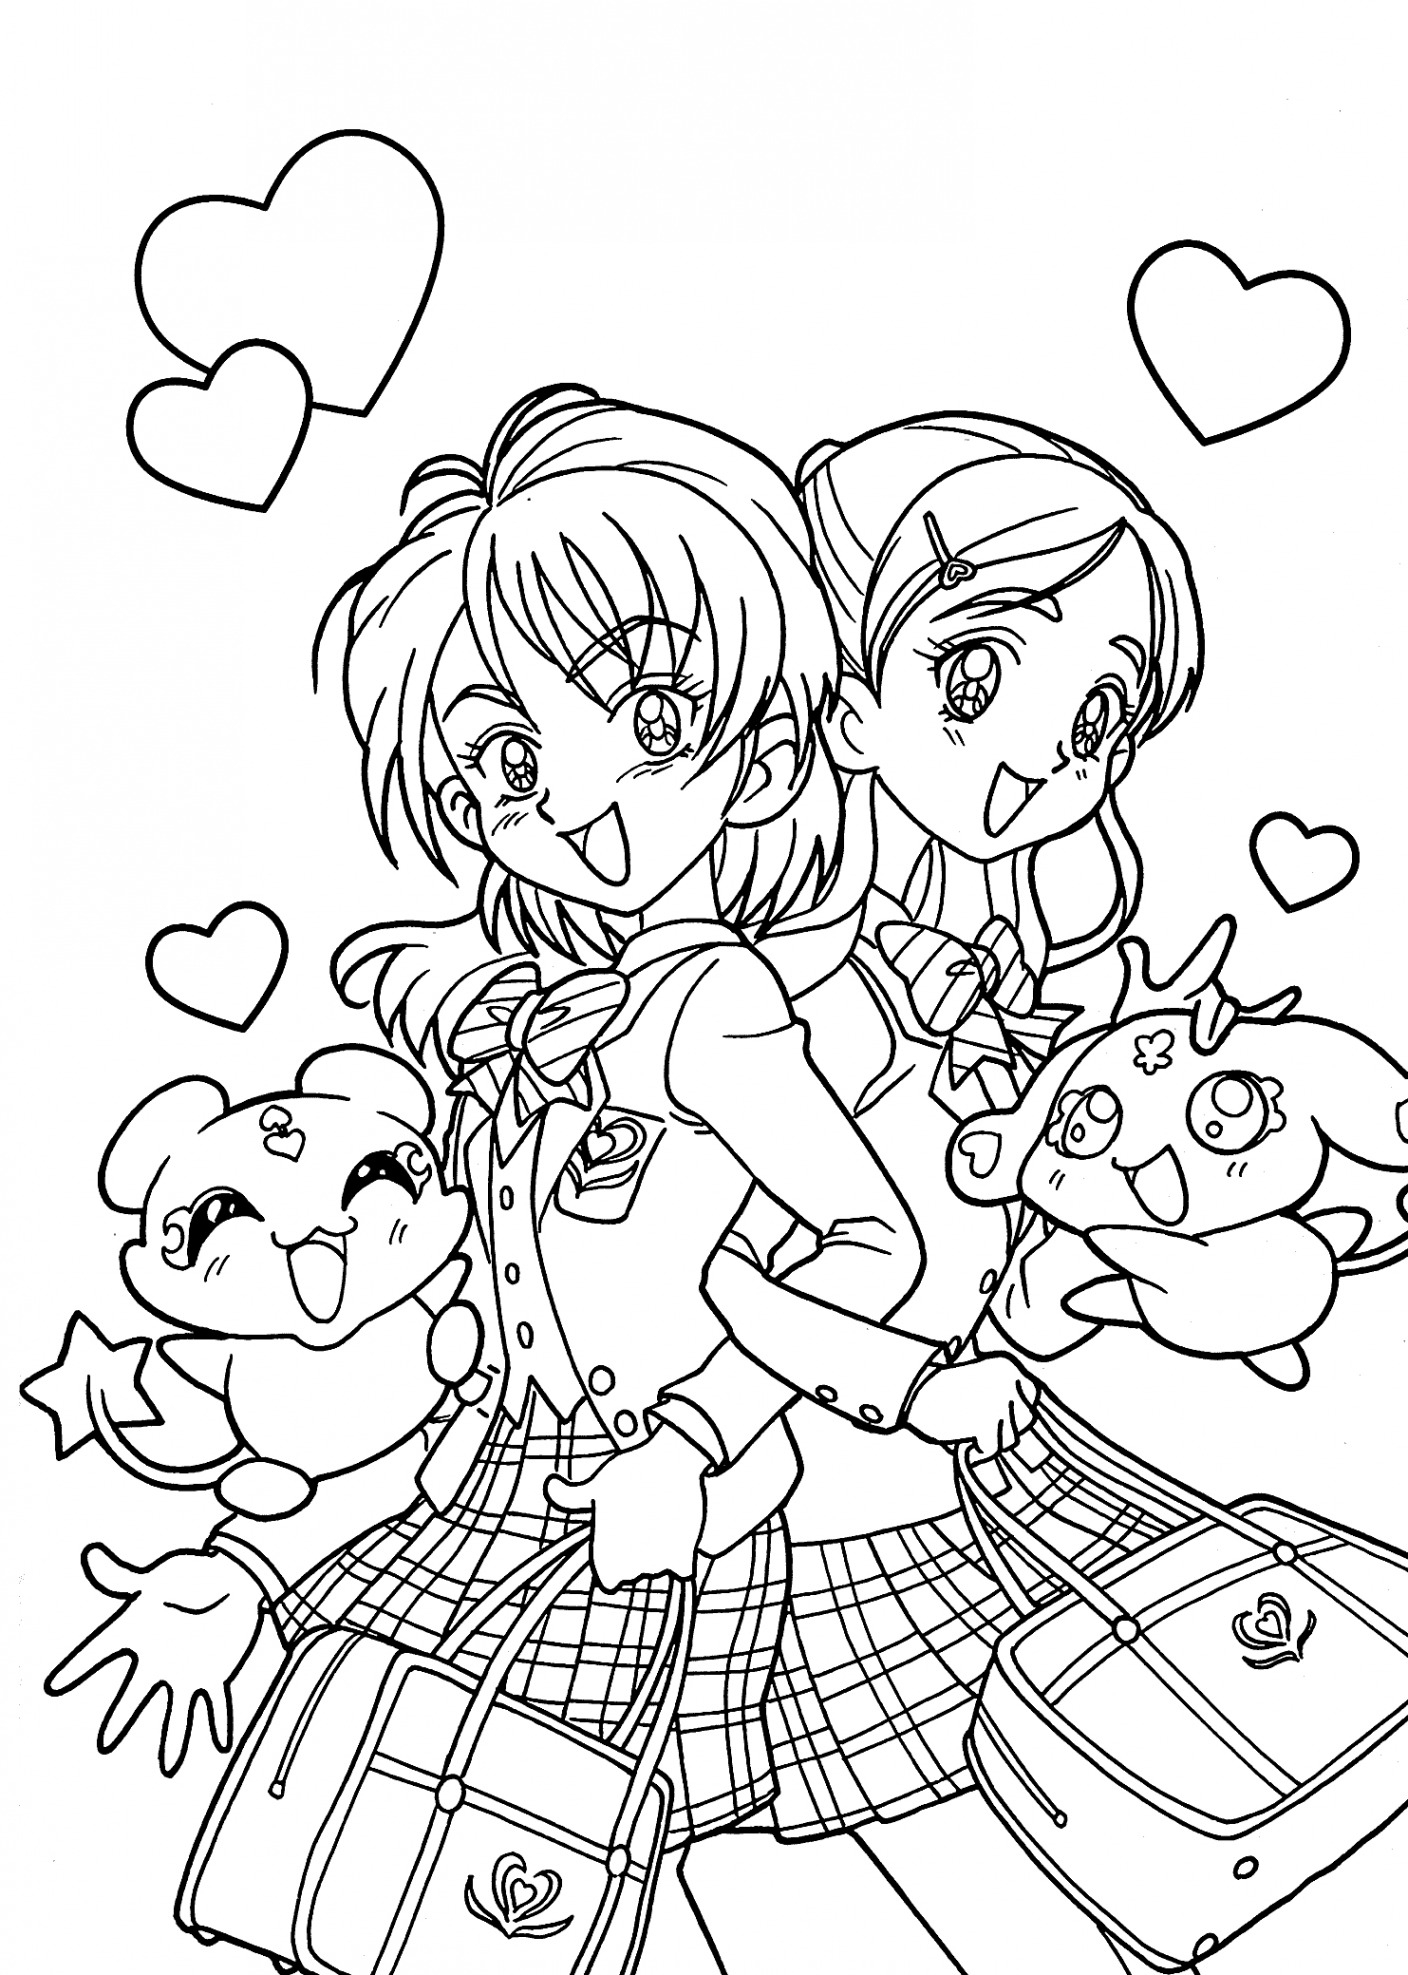 coloring pages to print for girls Download-Dress Coloring Pages Girl In Dress Coloring Page Printable Fresh Printable Coloring Pages for Girls 2-q